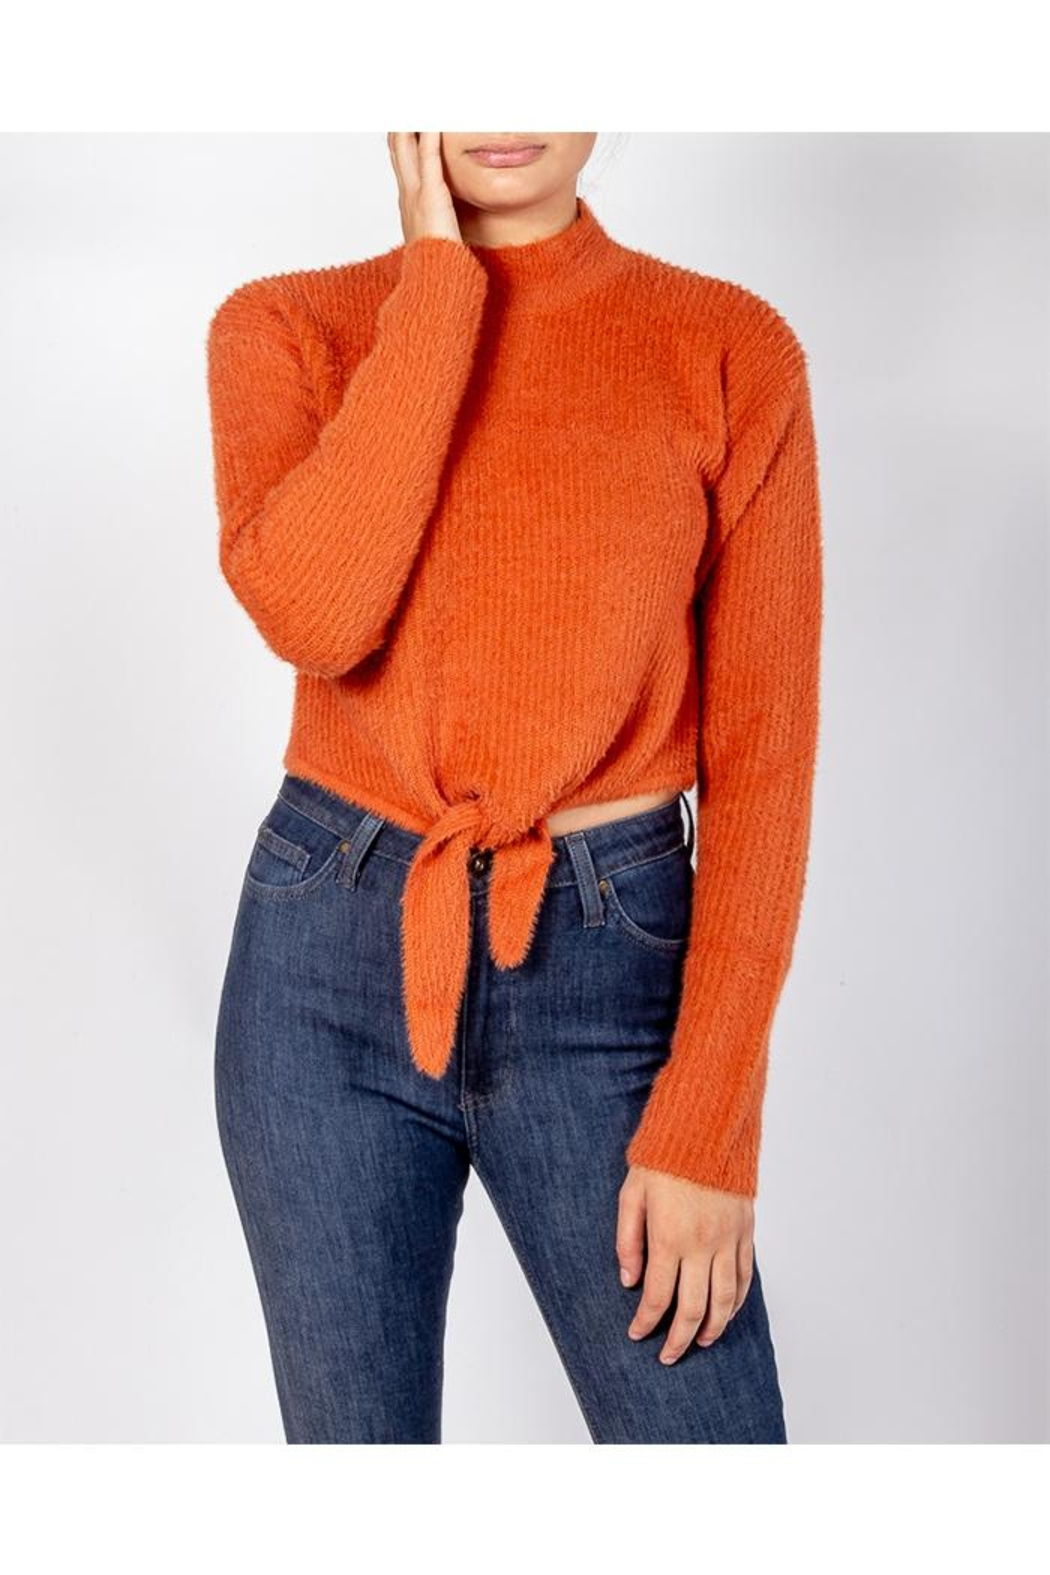 Cotton Candy Soft Front-Tie Sweater - Front Cropped Image